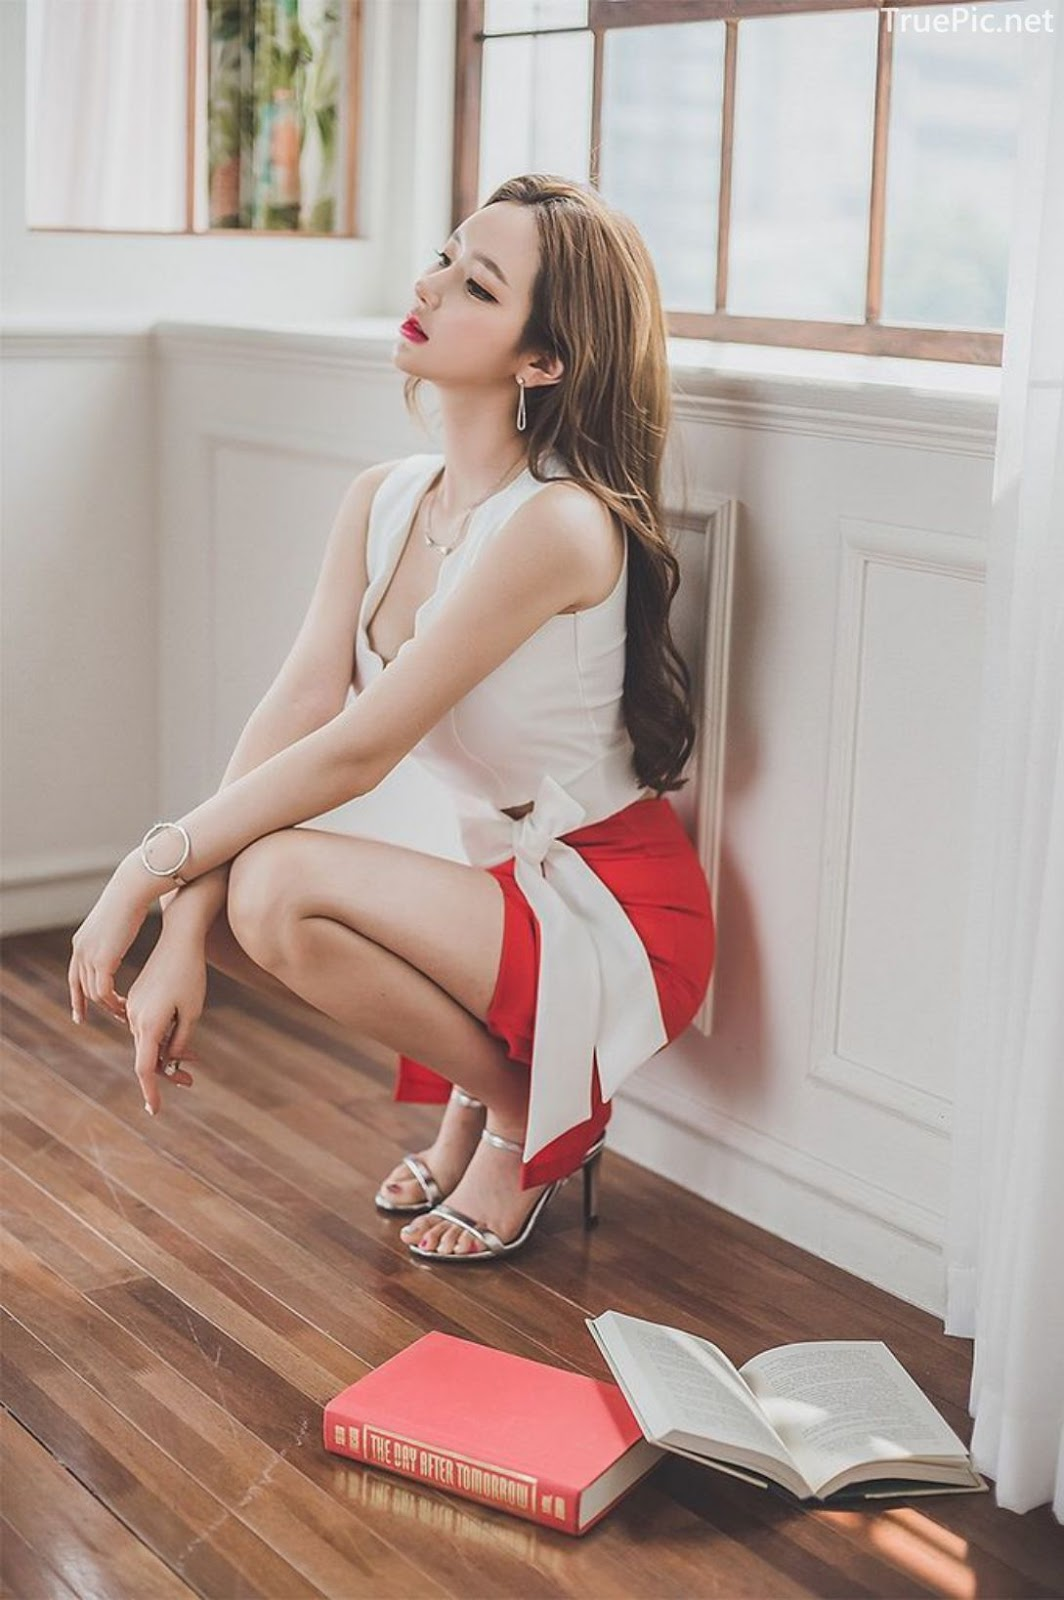 Lee Yeon Jeong - Indoor Photoshoot Collection - Korean fashion model - Part 6 - Picture 6